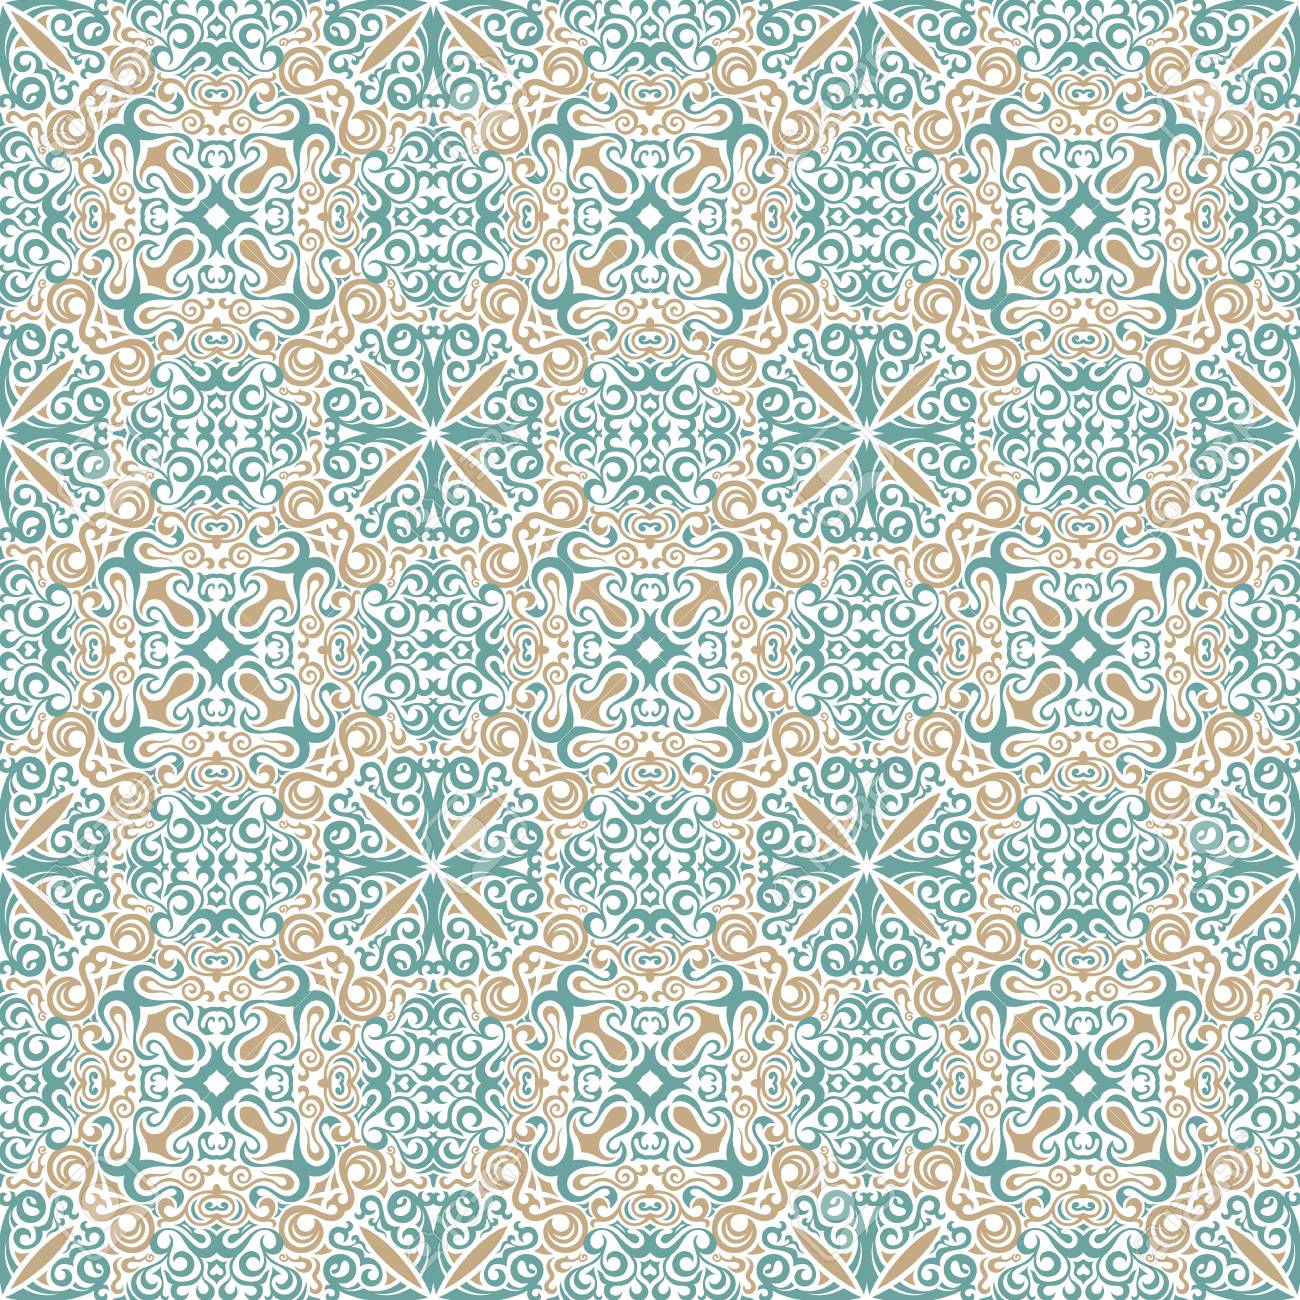 Vintage Floral Background Vector Islamic Royal Gold And Blue Pattern